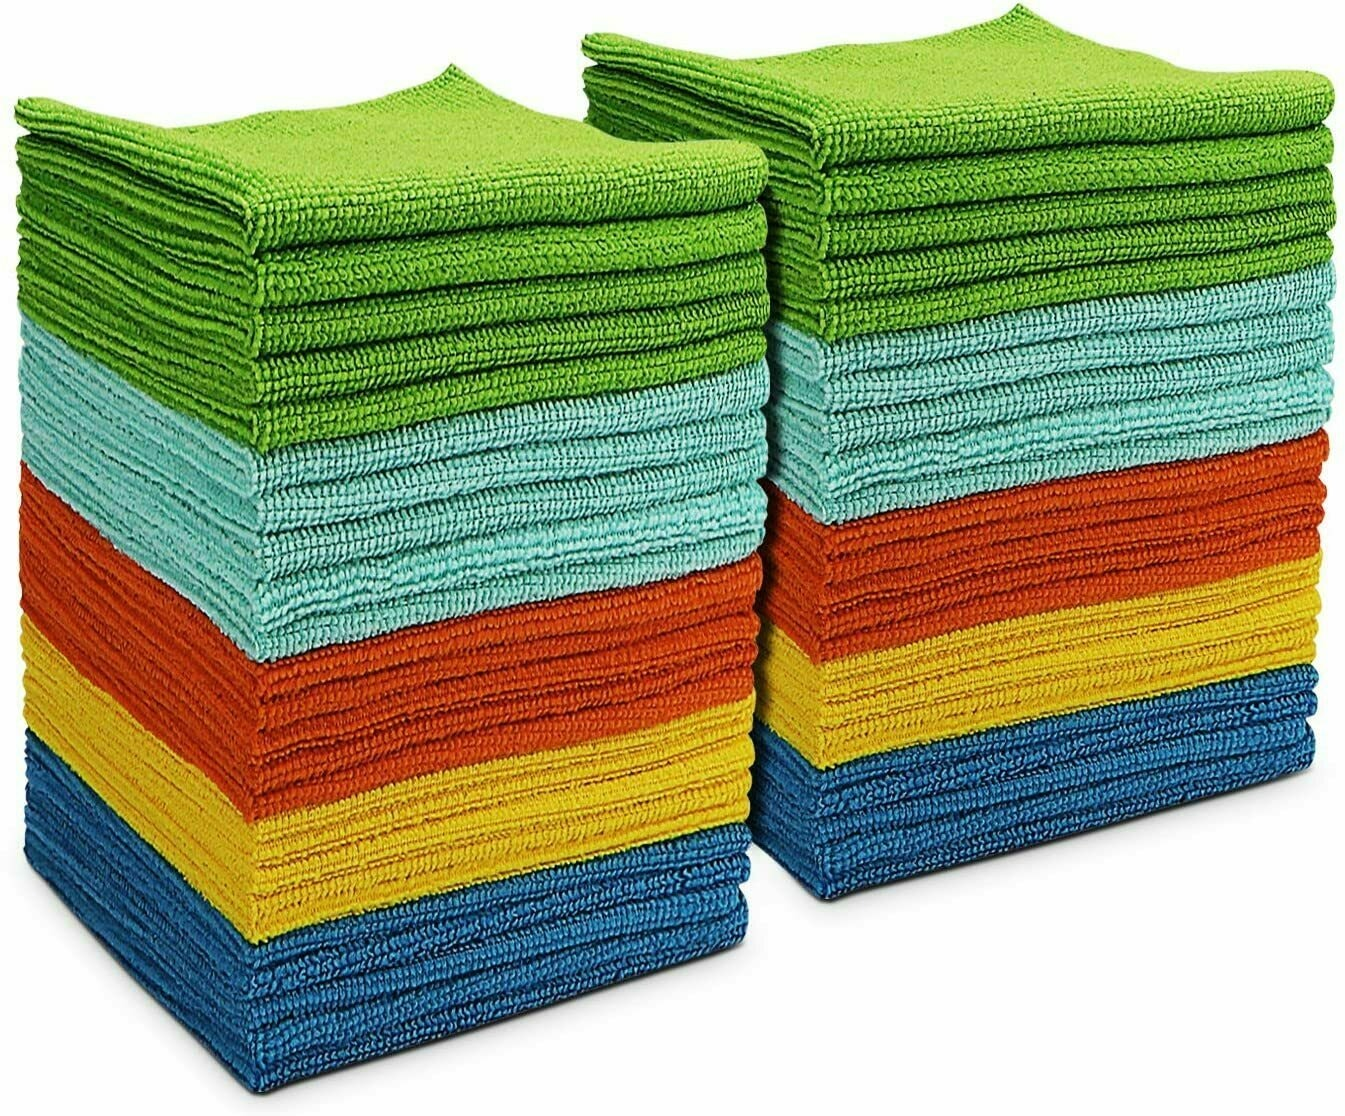 Aidea Microfiber Cleaning Cloths Softer Highly Absorbent